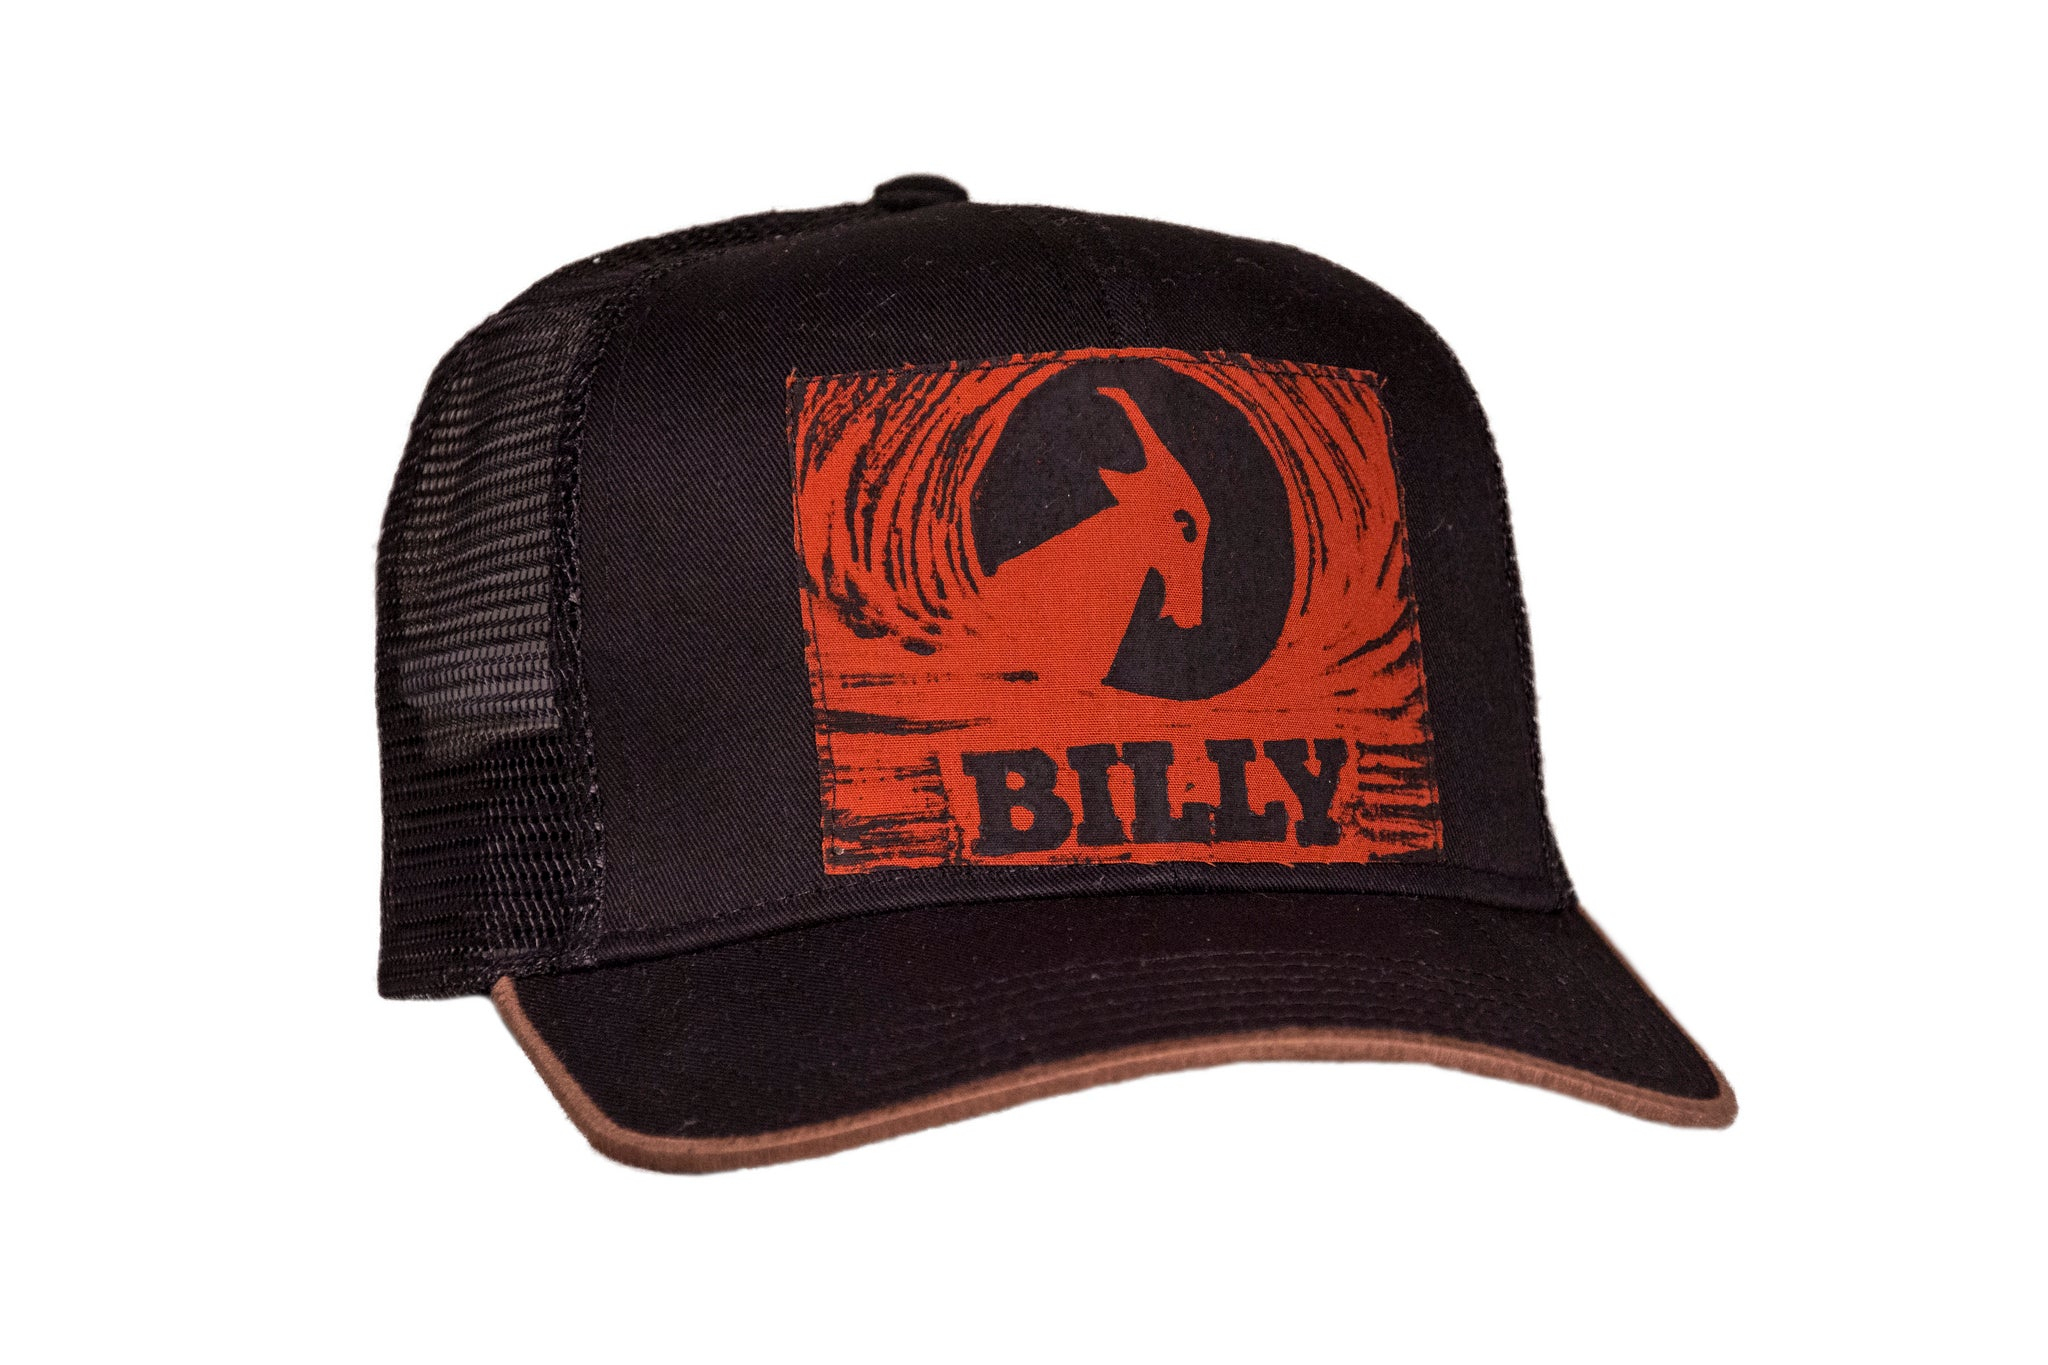 Trucker Hat - Burnt Orange on Black, zipper, shoes, velcro, adaptive, accessible, afo, universal, kids, comfortable, BILLY Footwear